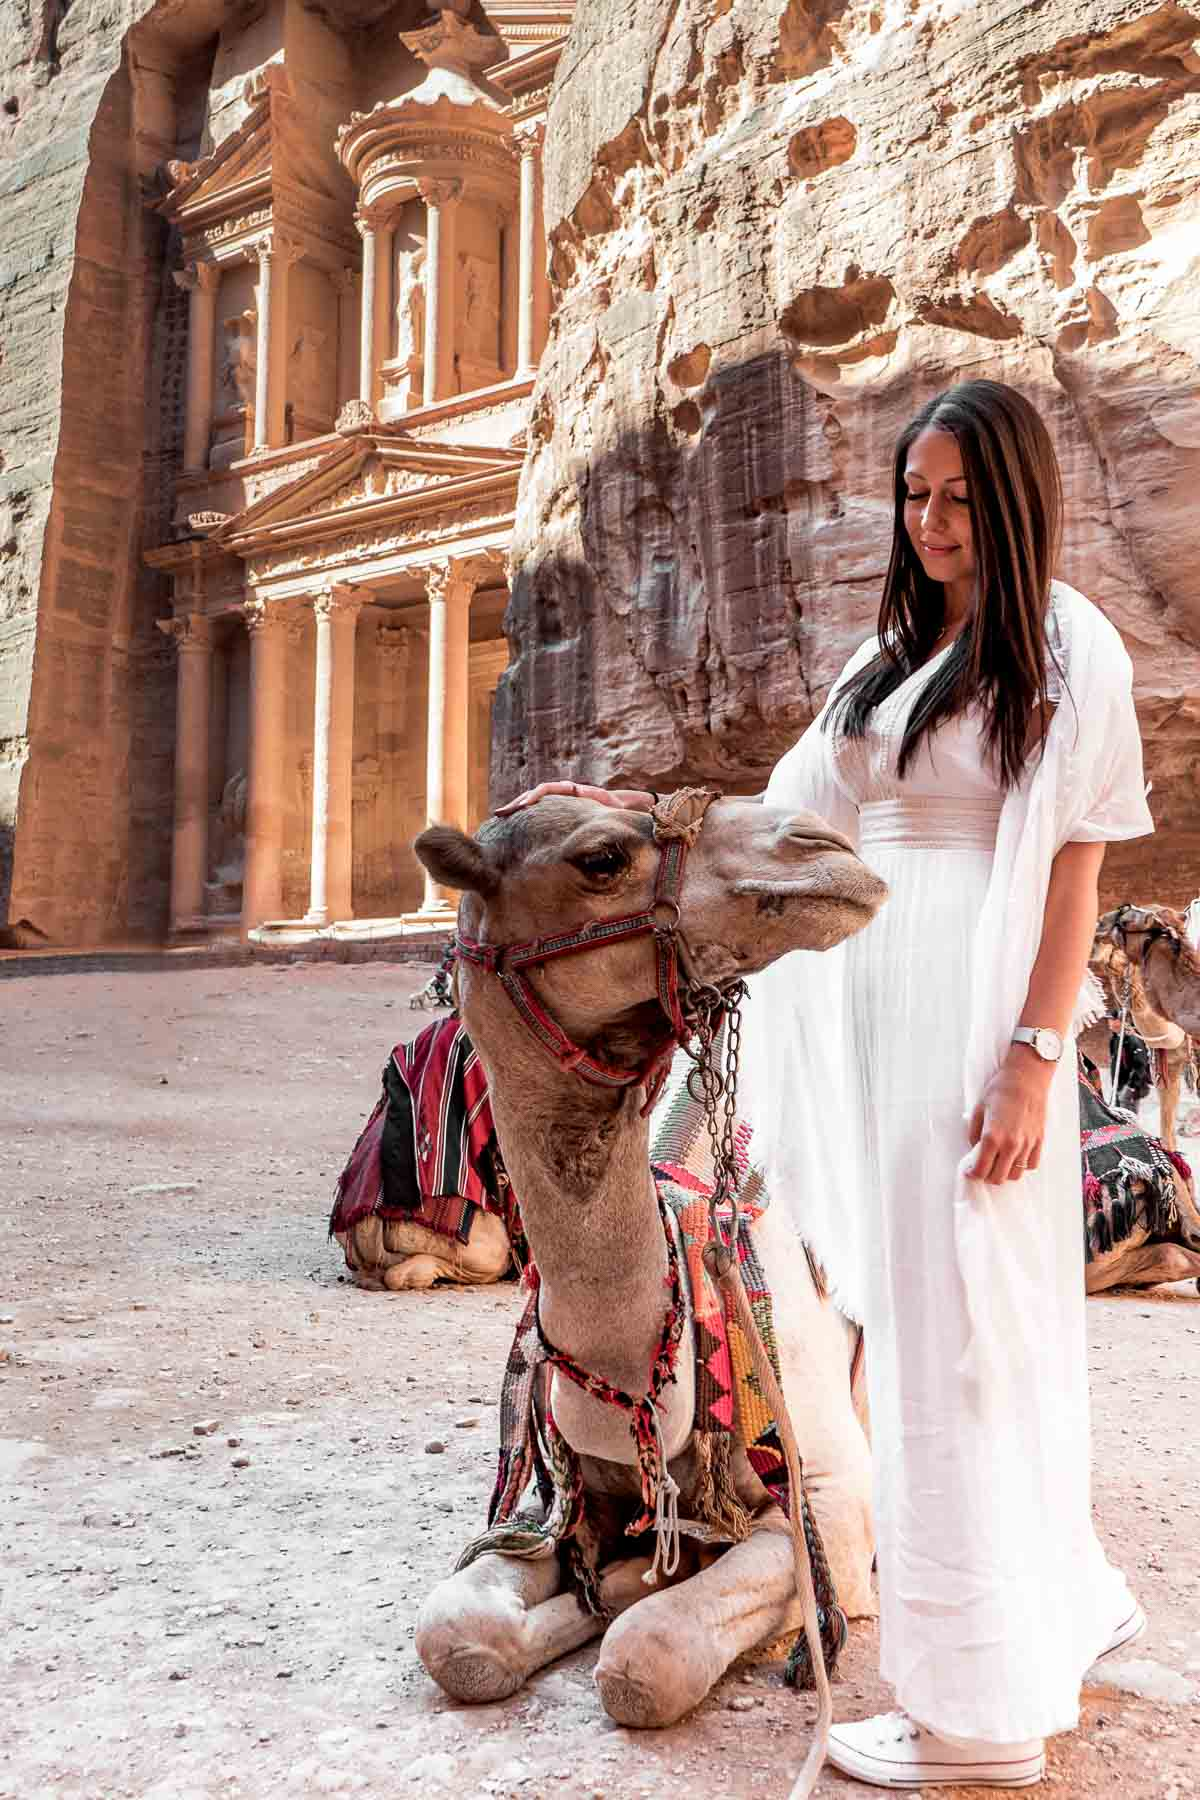 Girl in a white dress standing next to a camel with the Treasury in the background at Petra, Jordan